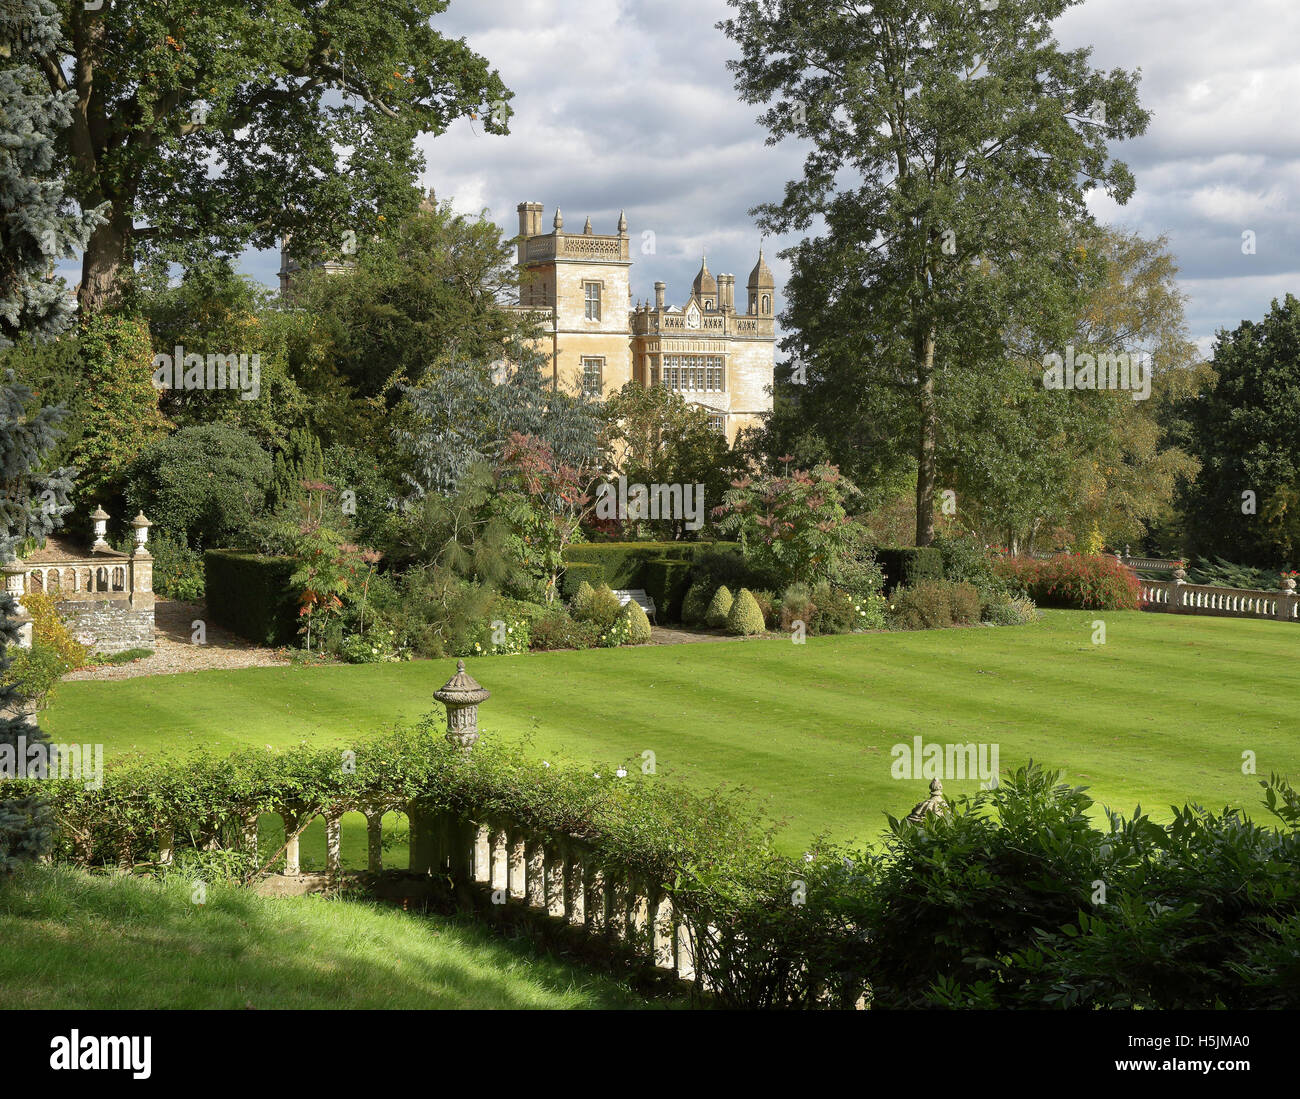 An English Formal Landscape garden and stately home with balustrades - Stock Image